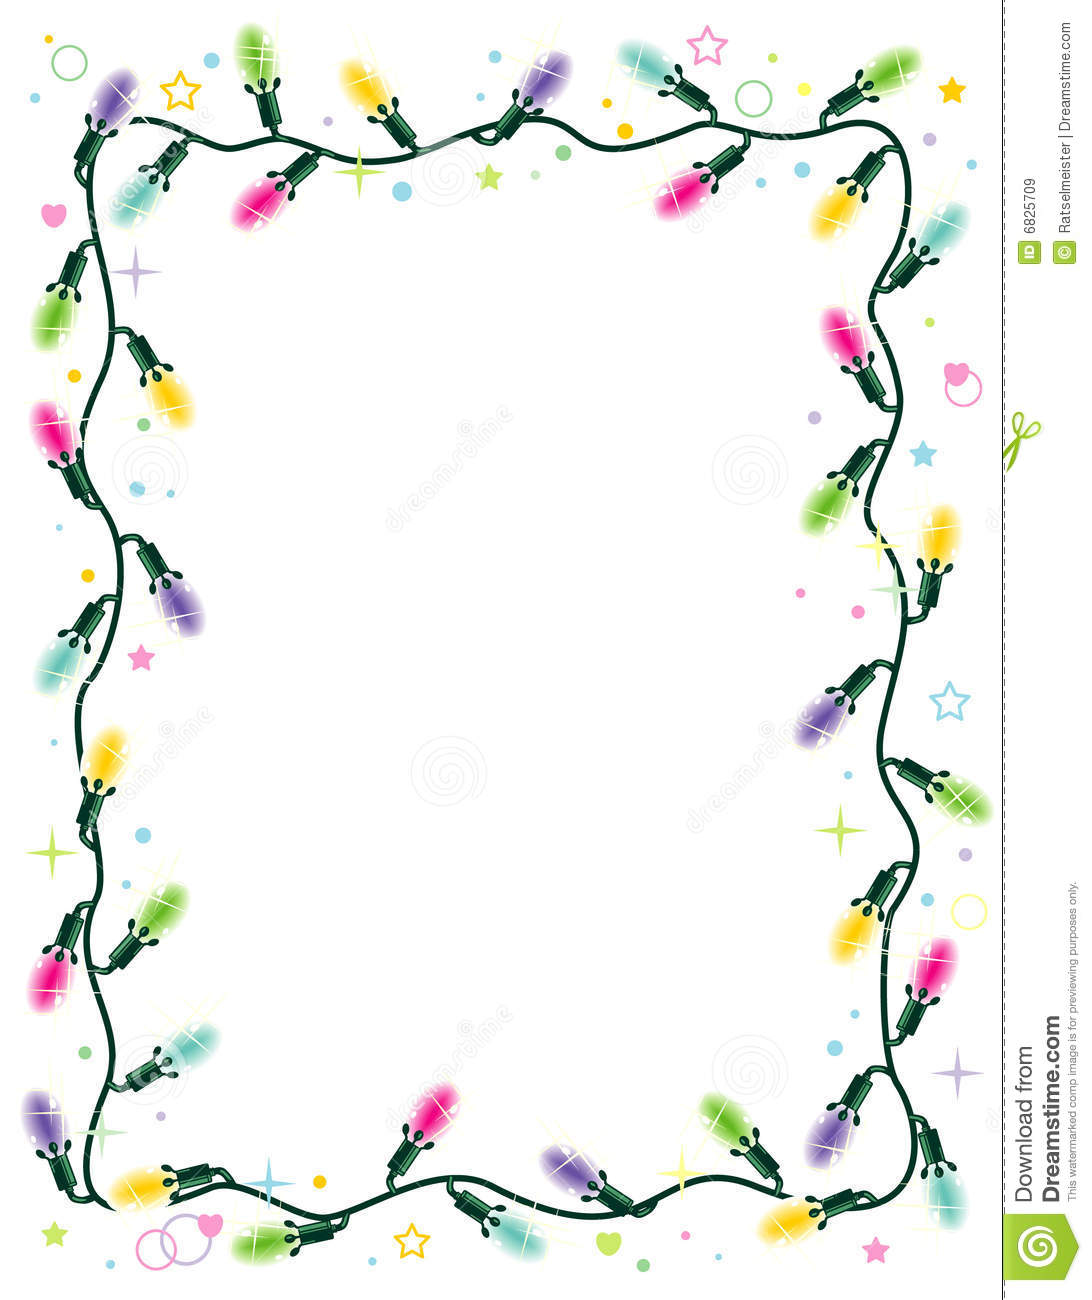 Horizontal Christmas Tree Border Clipart